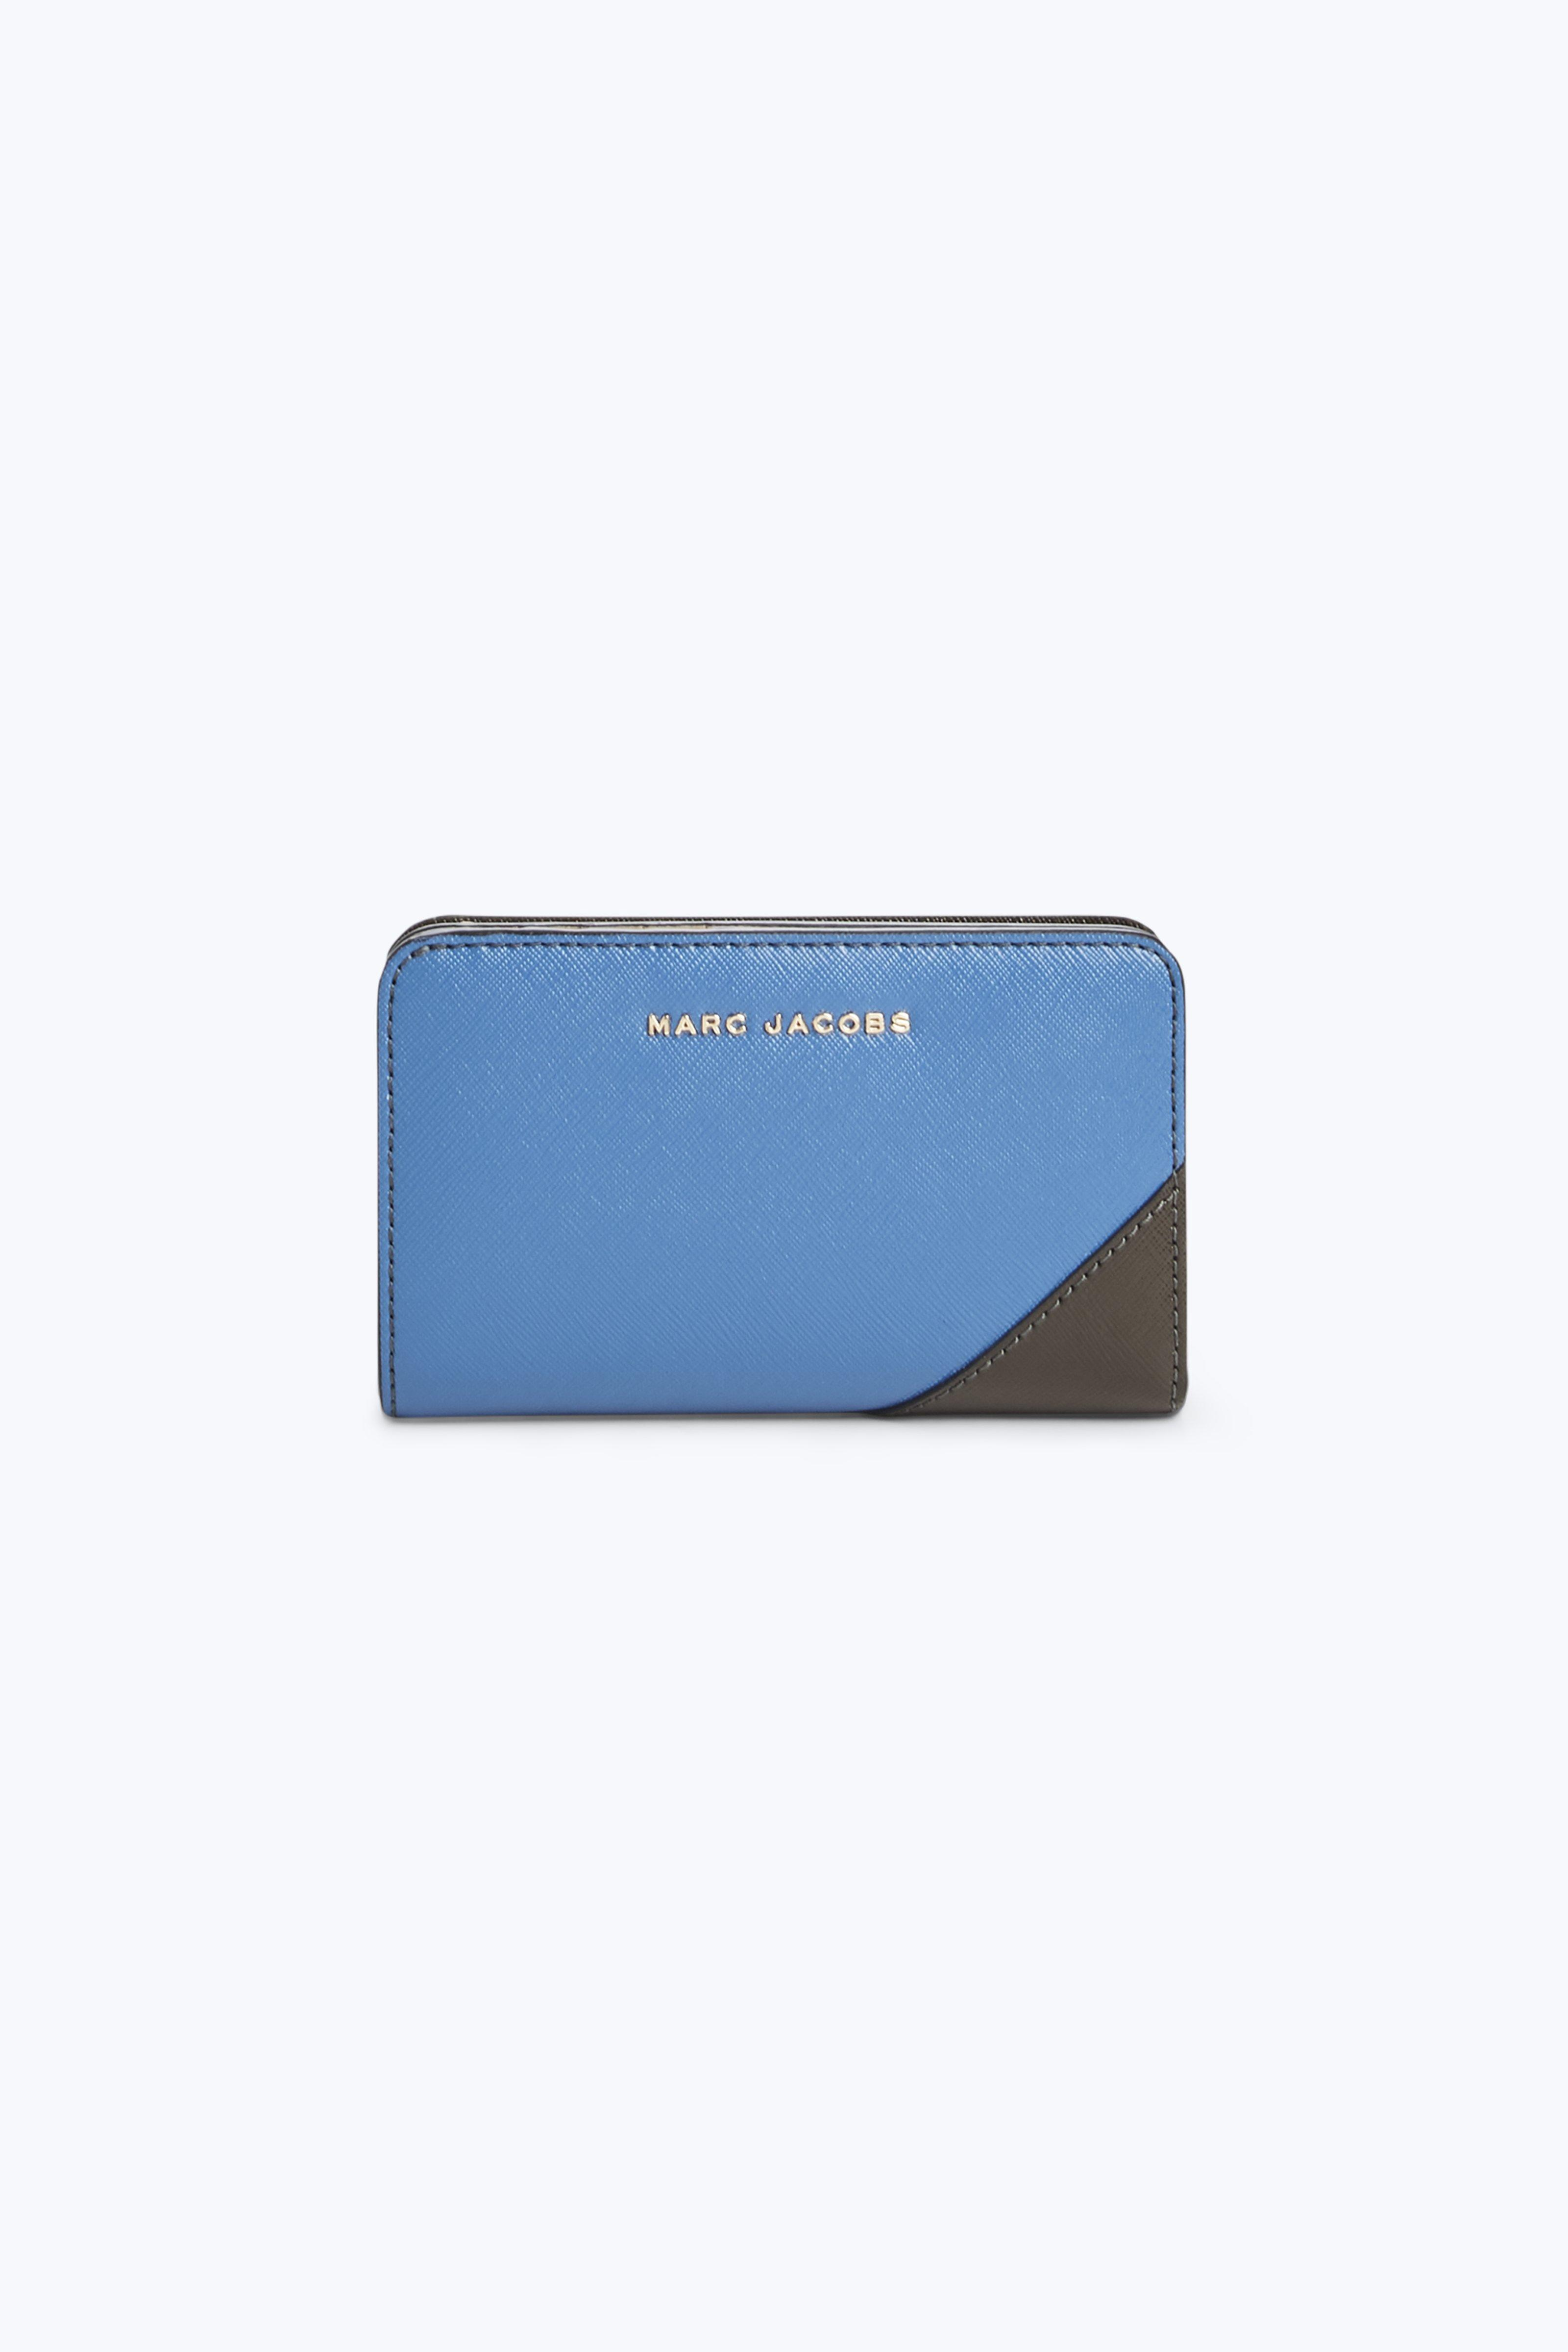 Marc Jacobs Saffiano Metal Letters Compact Wallet In Vintage Blue Multi Modesens